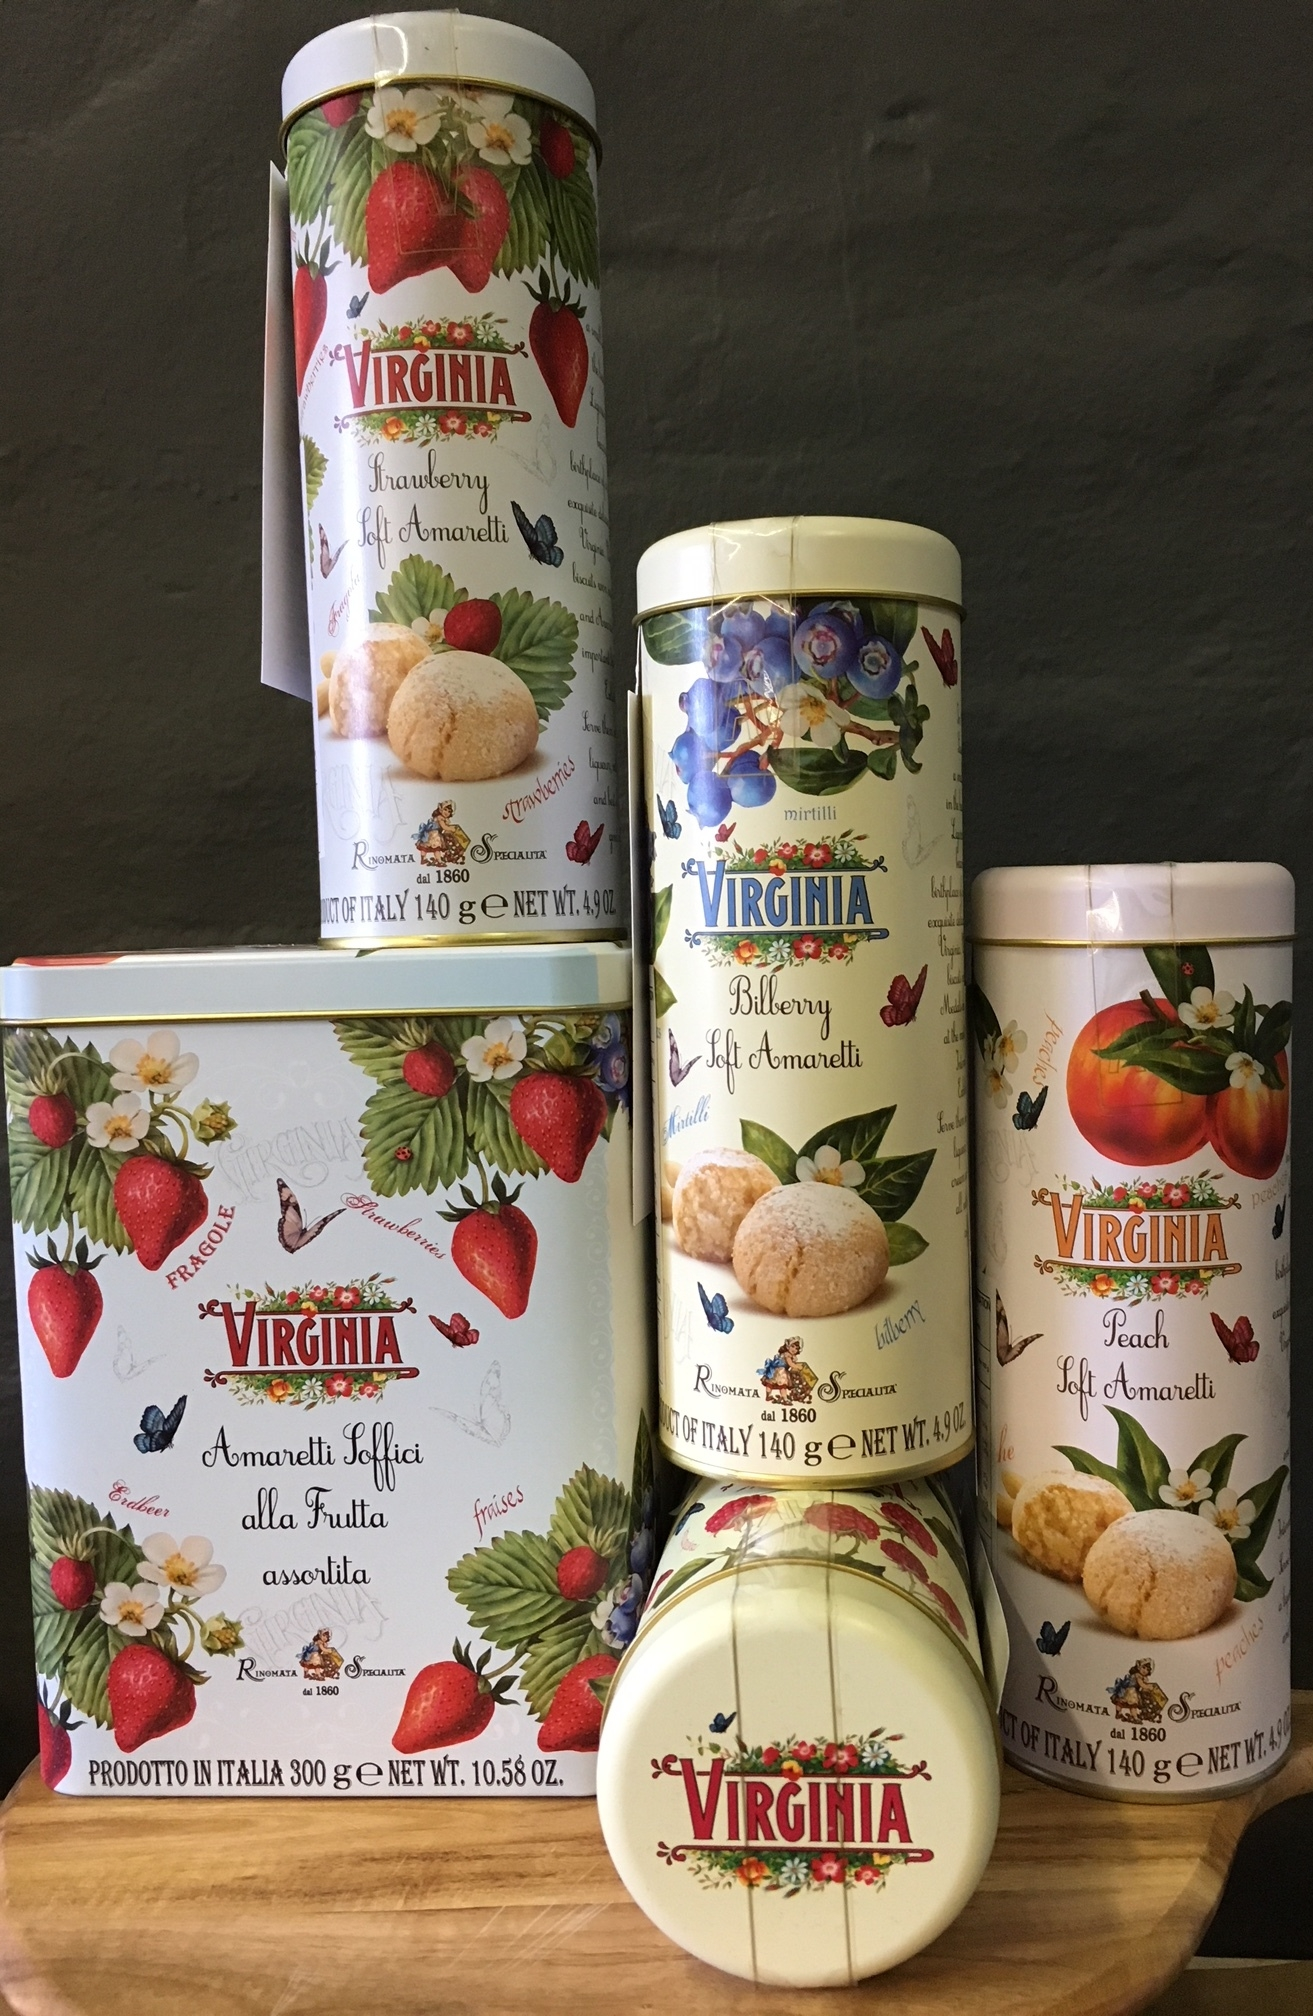 "Soft Amaretti with Fruit (""Amaretti Soffici alla Frutta"") These soft amaretti have a delightfully chewy texture and are flavoured with real fruit pulp - strawberry, blueberry, raspberry or peach. The biscuits are individually wrapped to maintain freshness. They are also gluten-free."